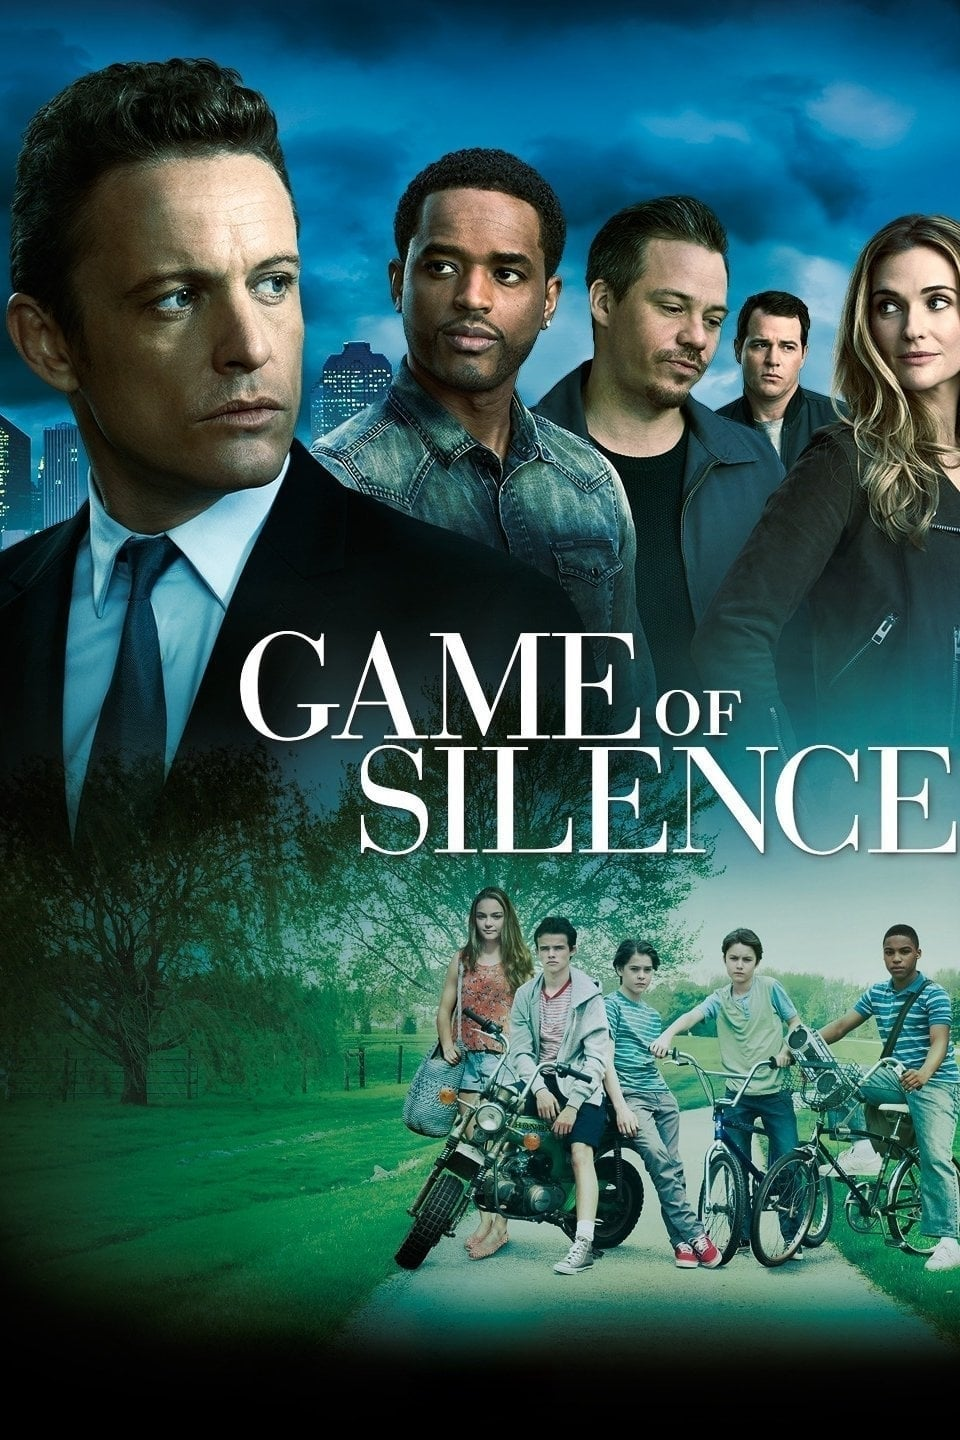 Game of Silence' />